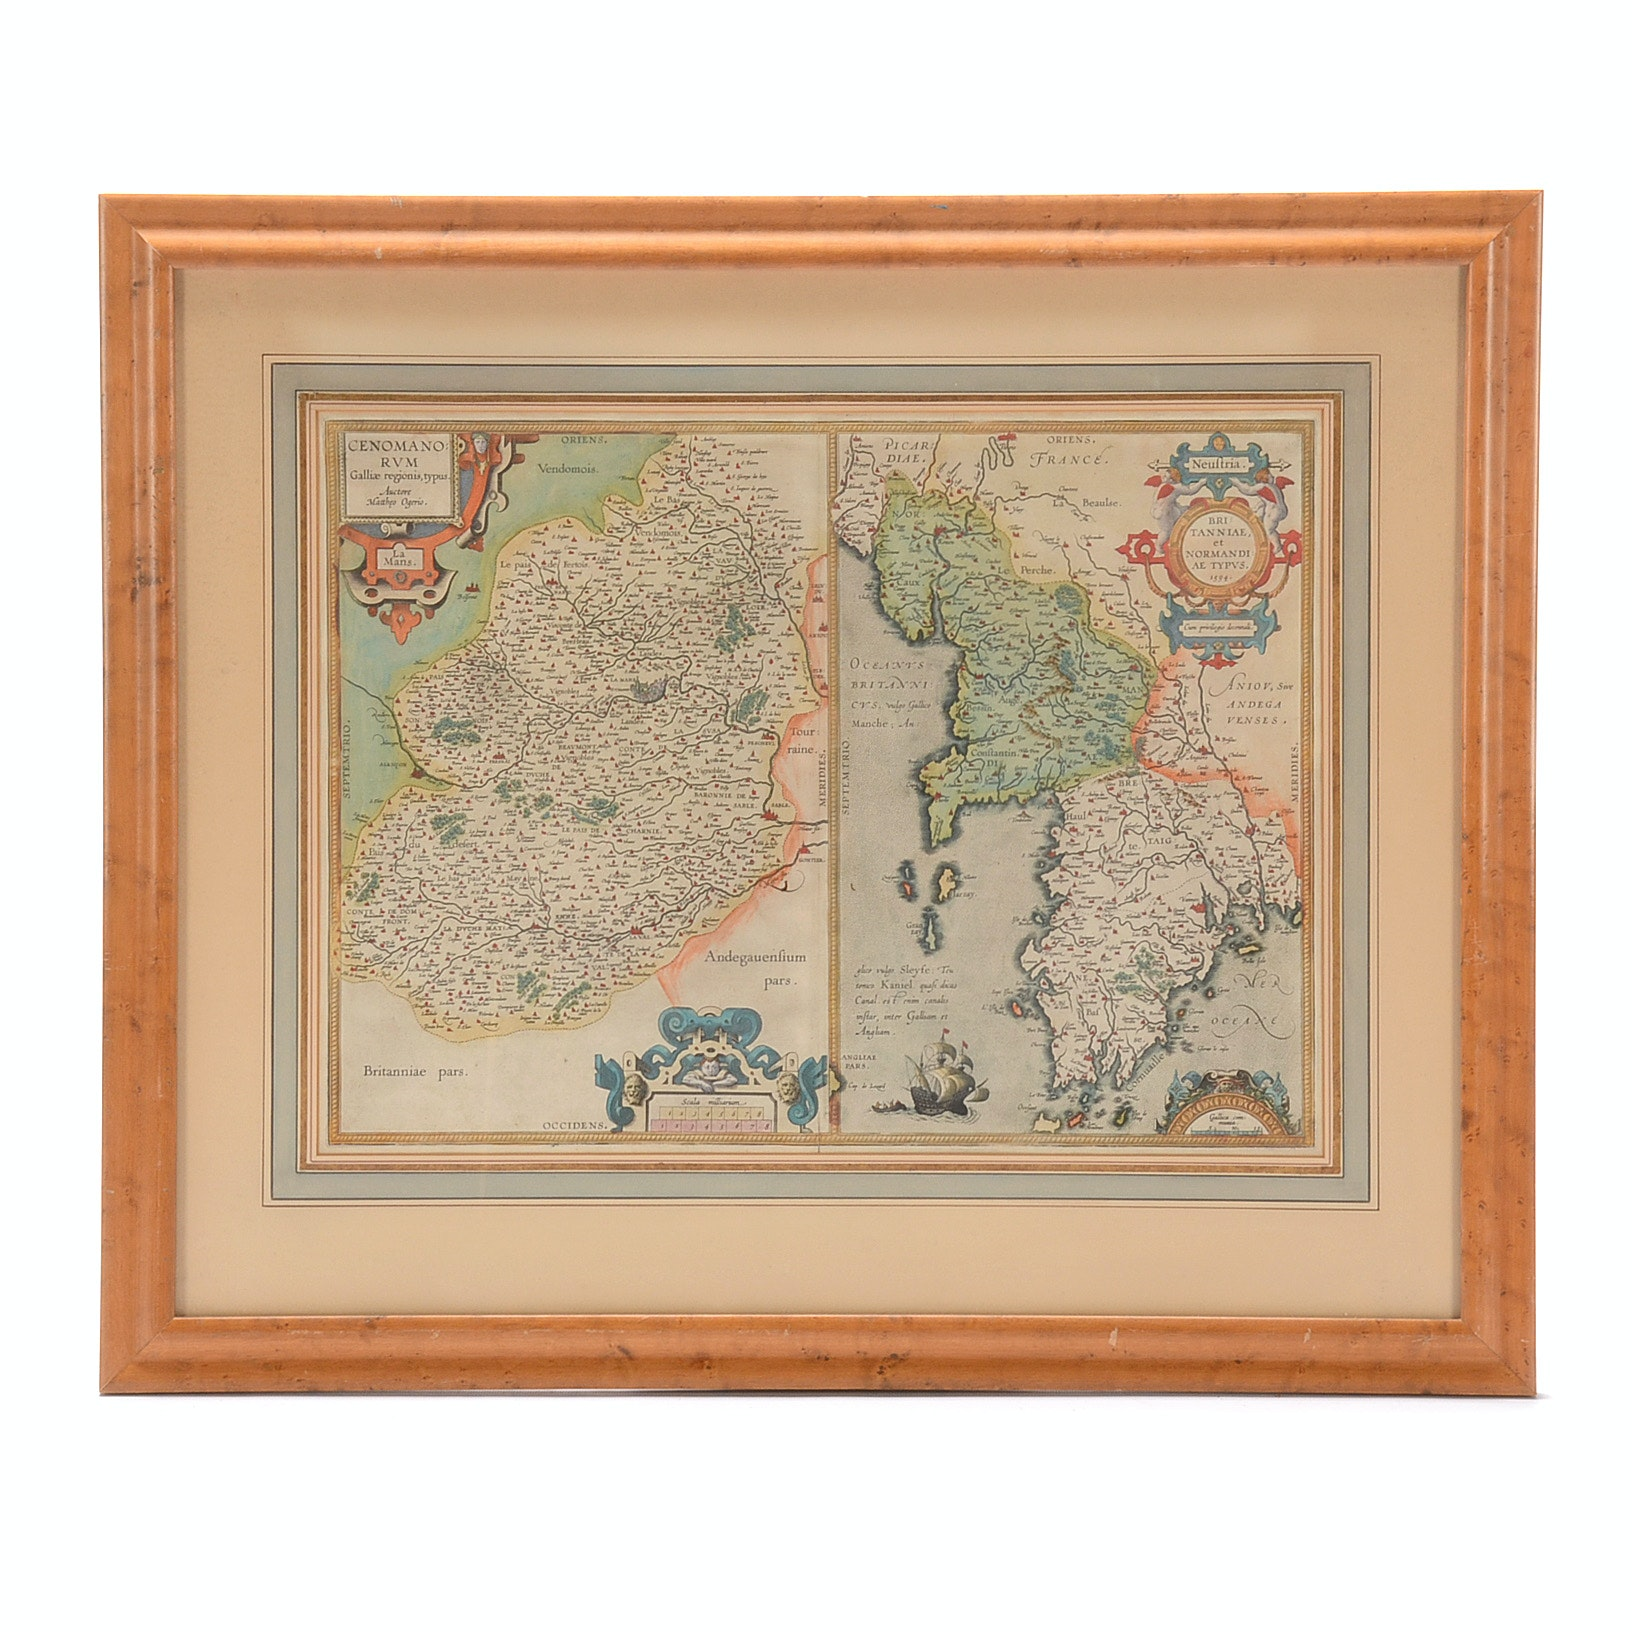 1603 Abraham Ortelius Hand-Colored Engraved Map of Normandy and Brittany